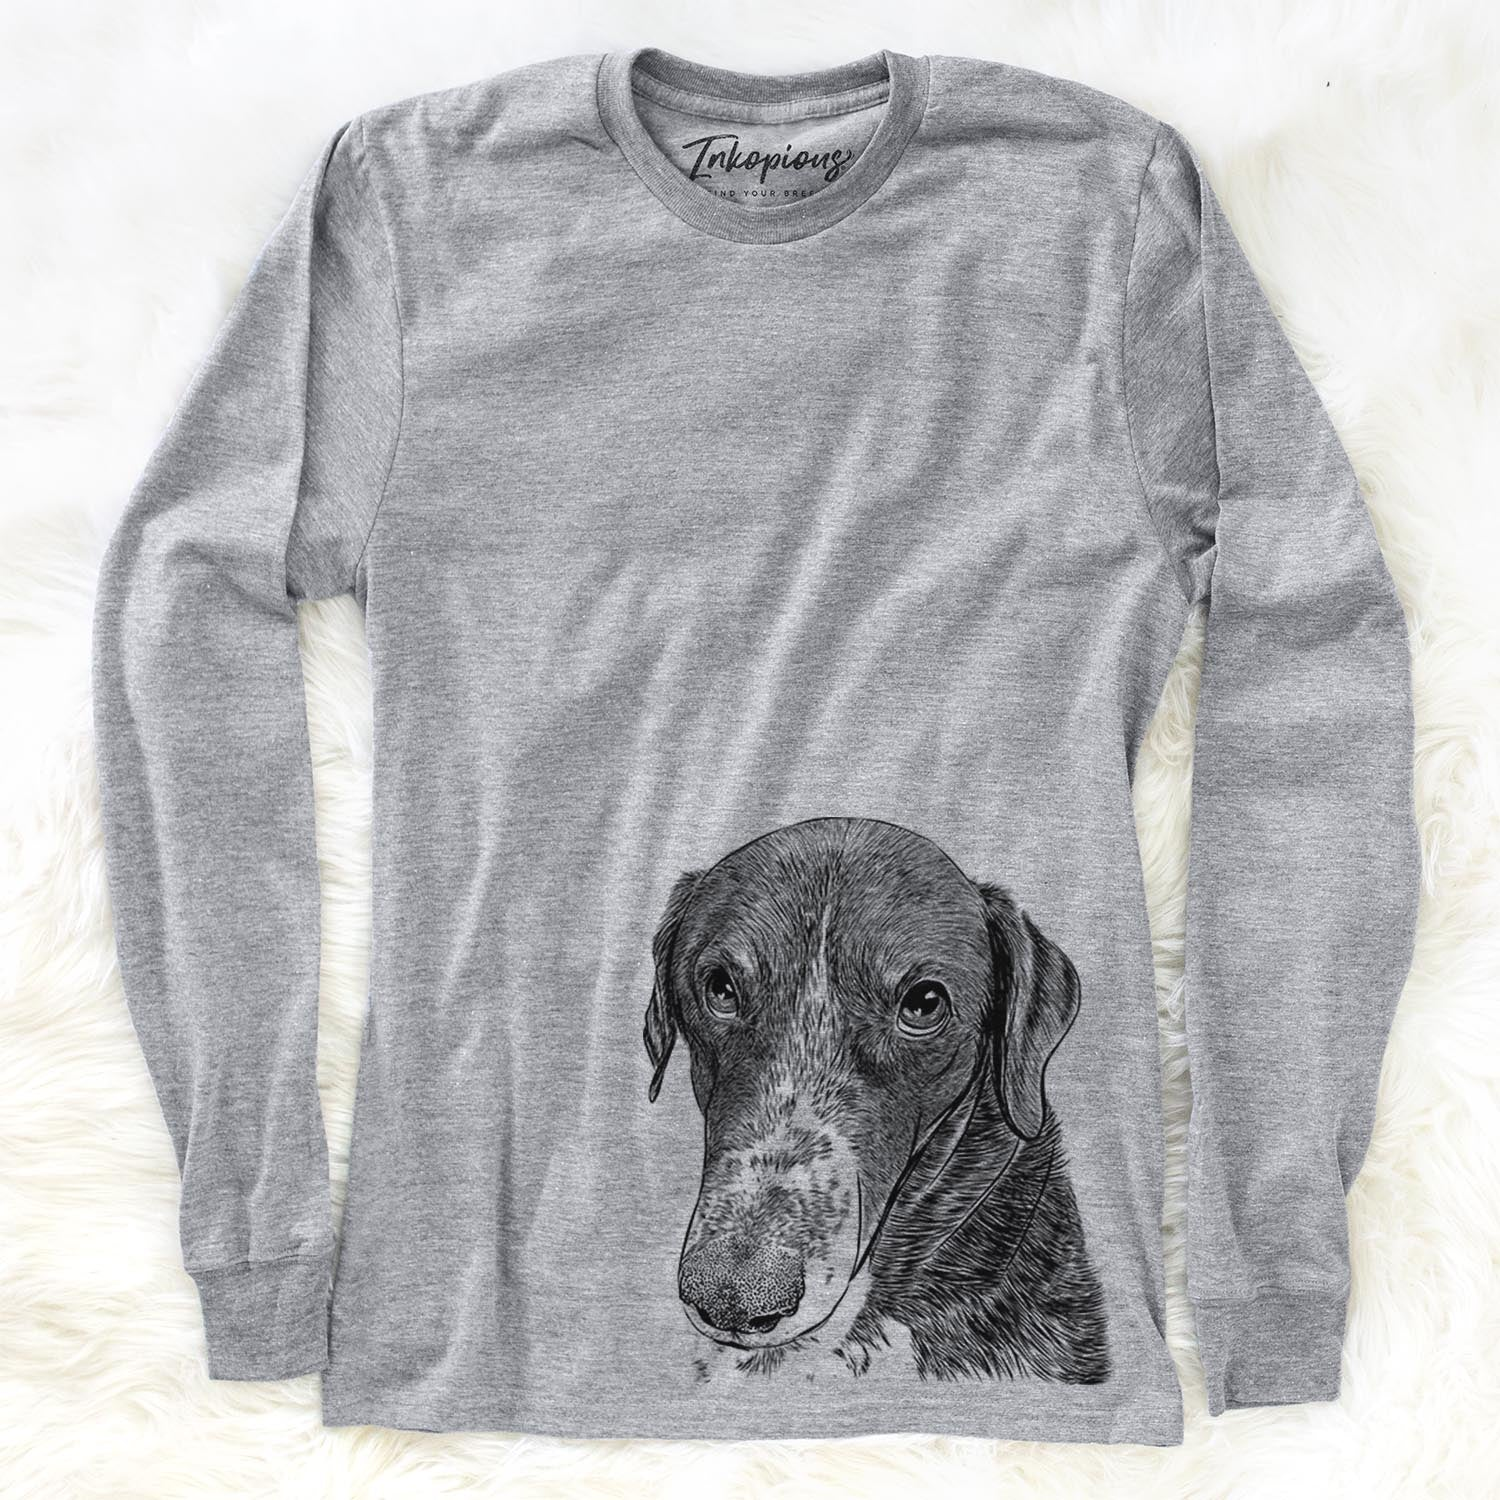 Angel Orion the Mixed Breed - Long Sleeve Crewneck